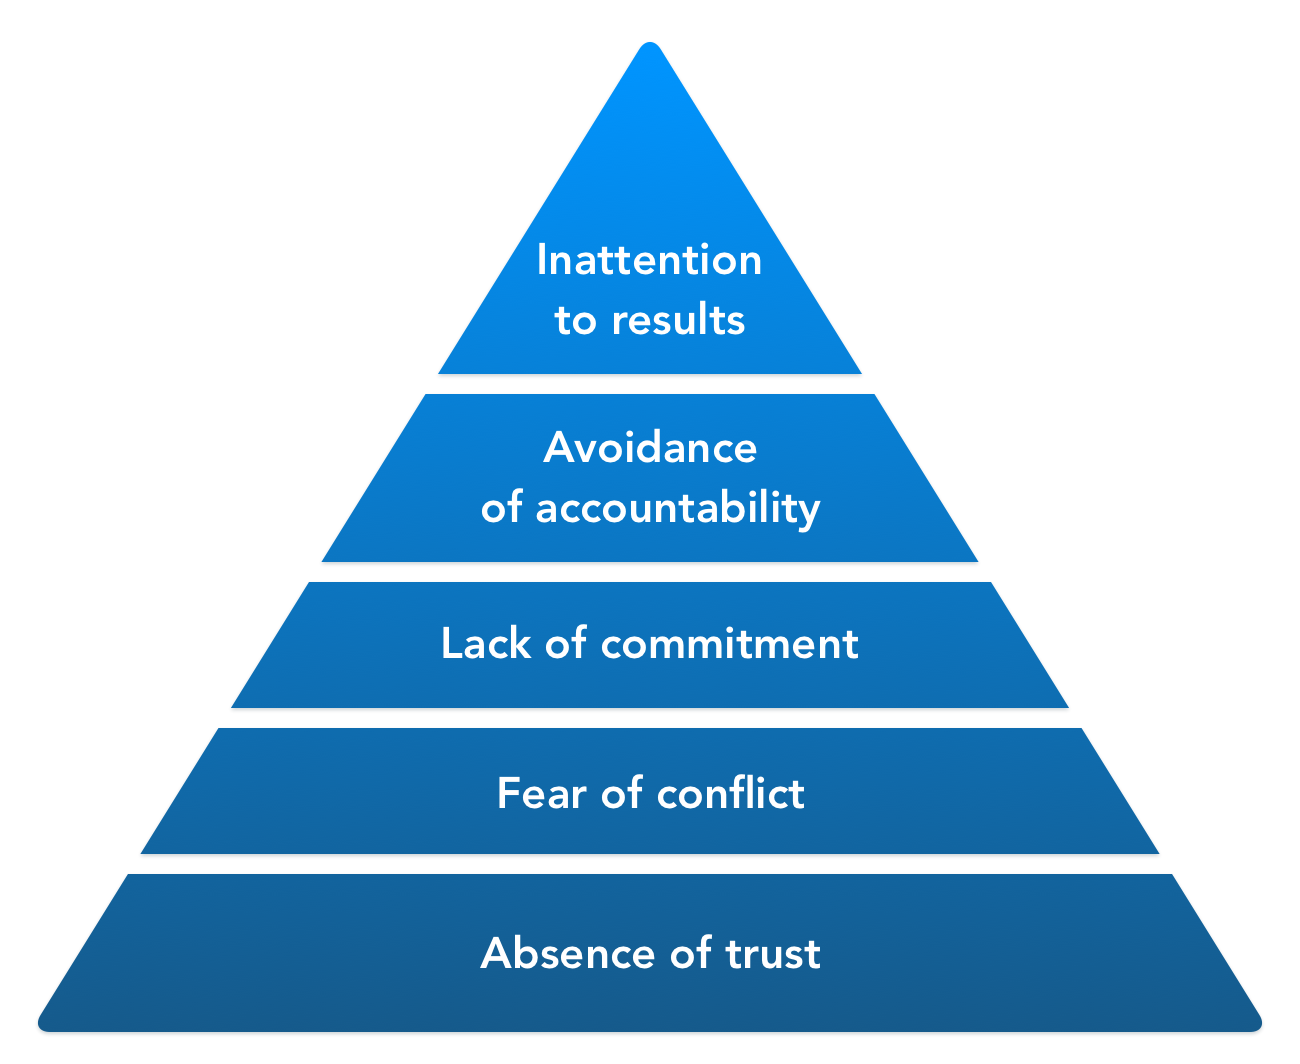 The dysfunctional team pyramid - 5 dysfunctions of a team